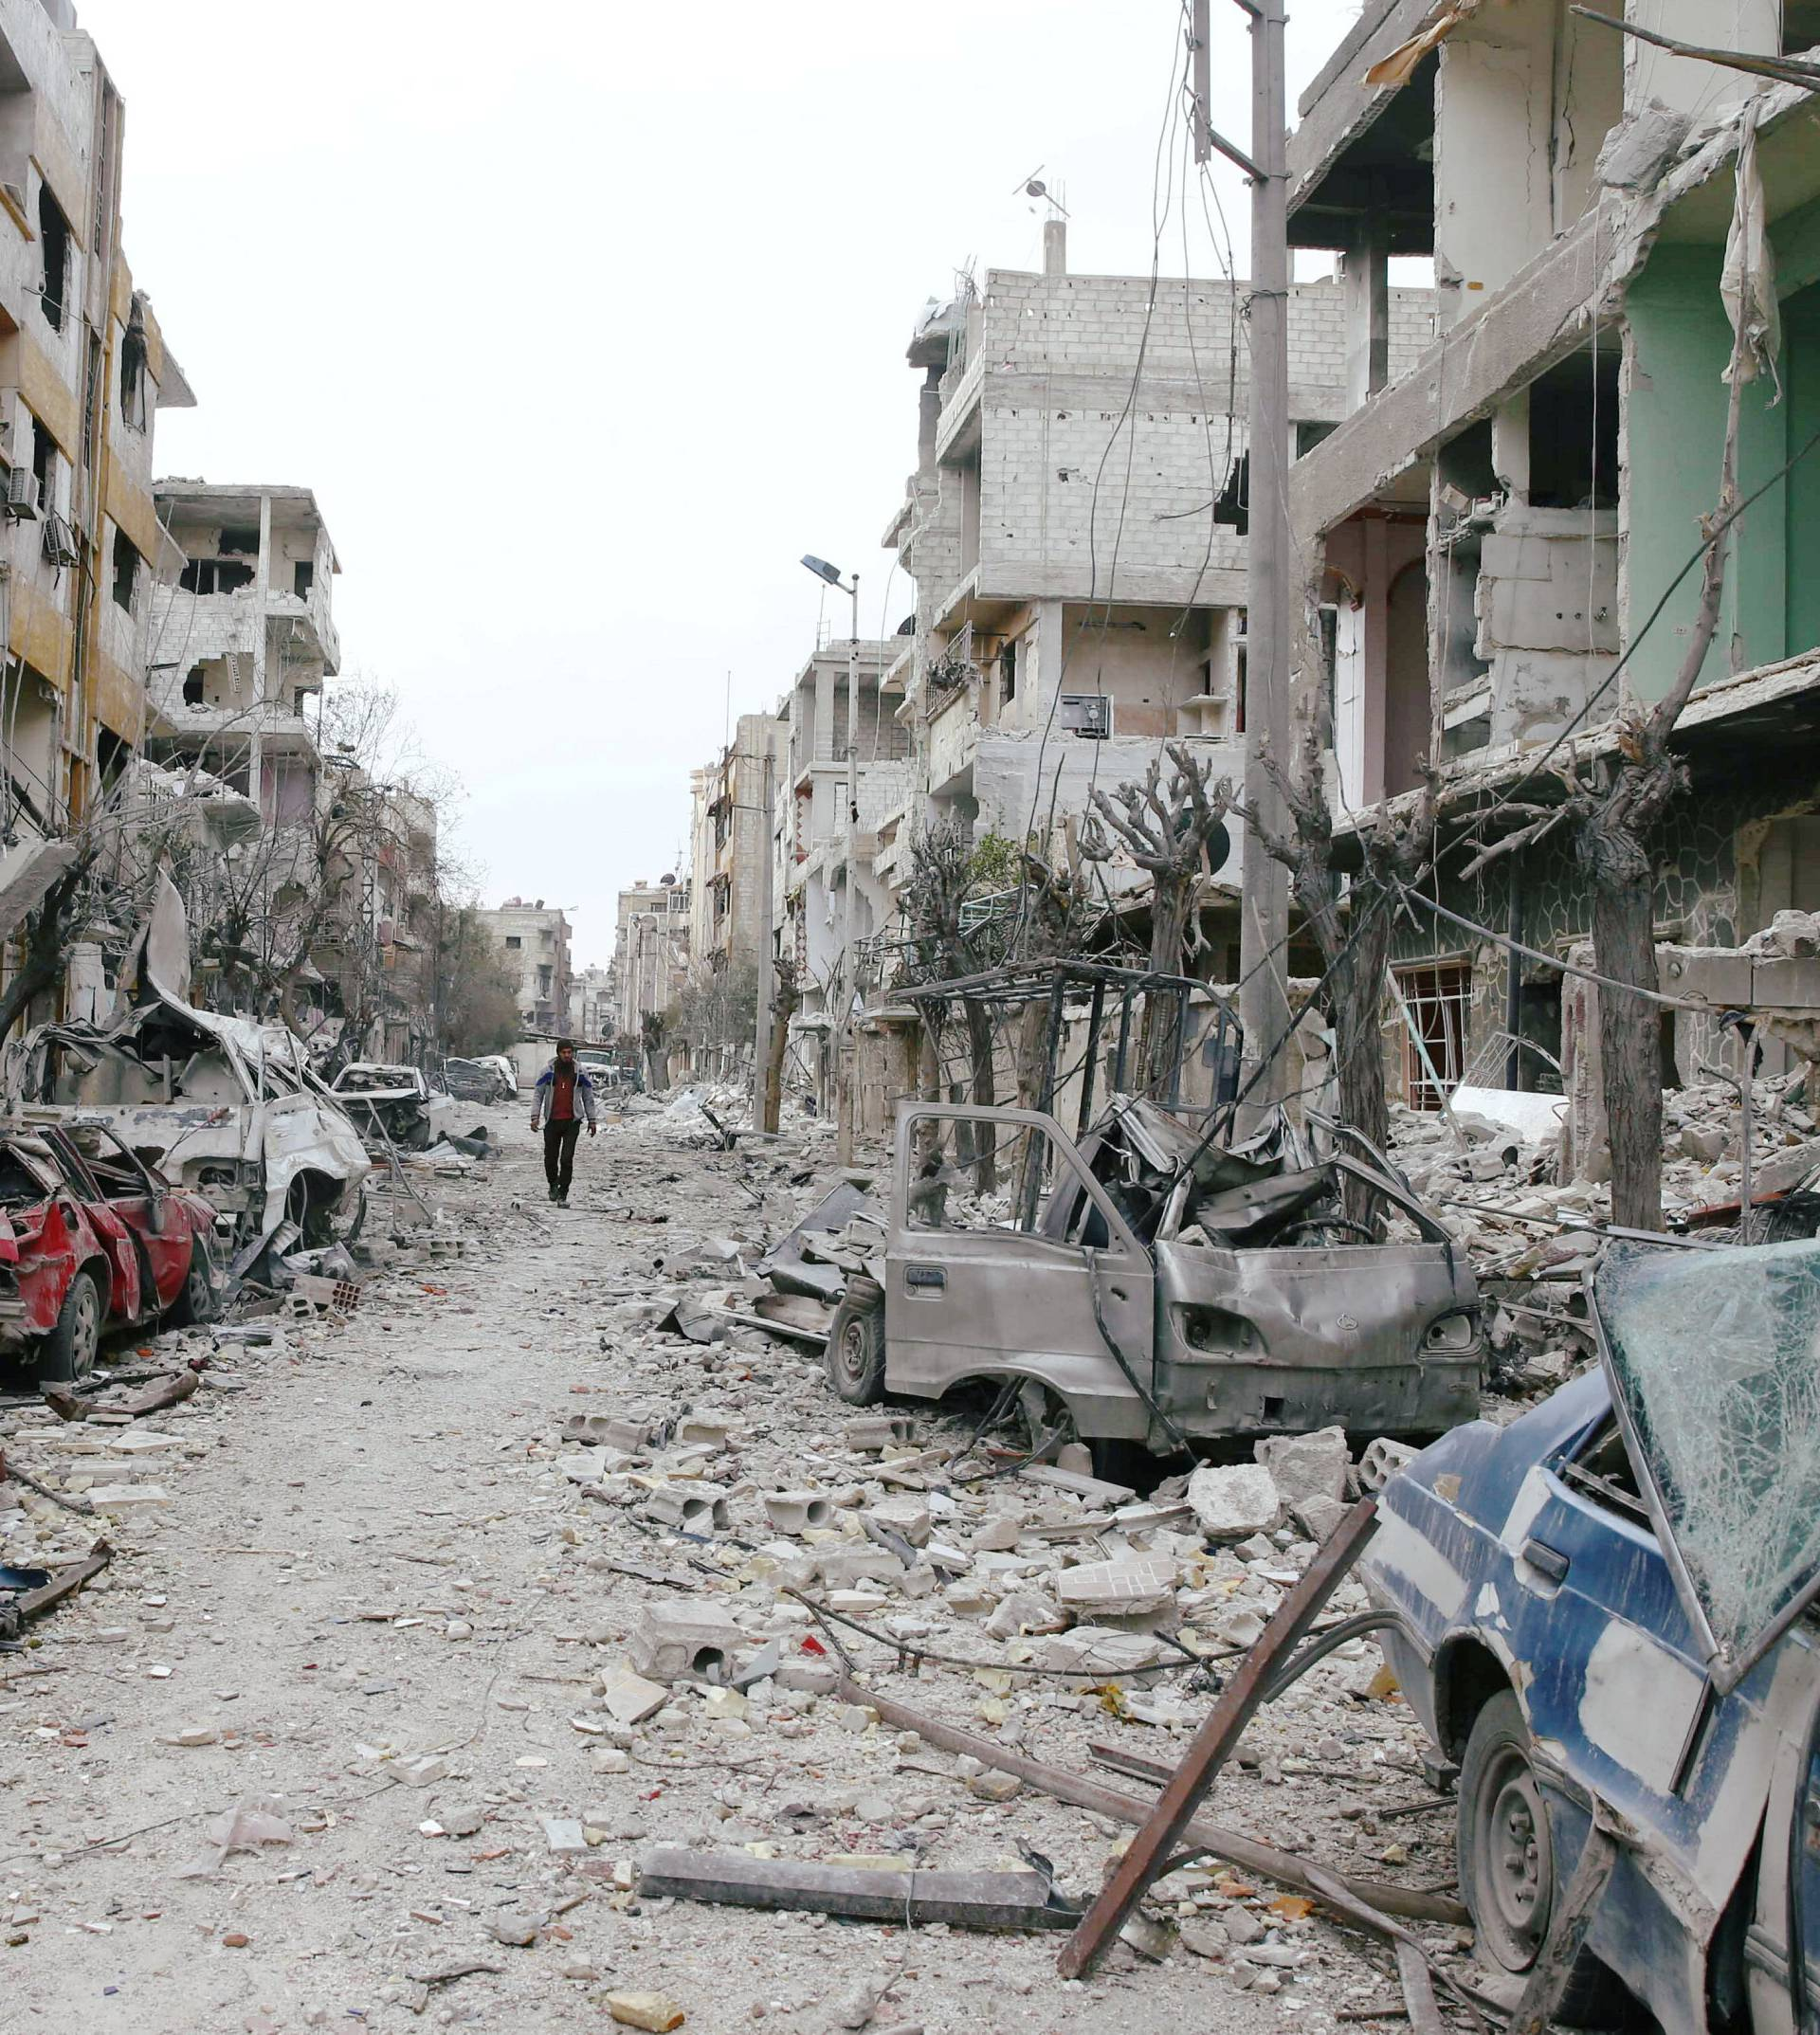 Damaged cars and buildings are seen in the besieged town of Douma, Eastern Ghouta, Damascus